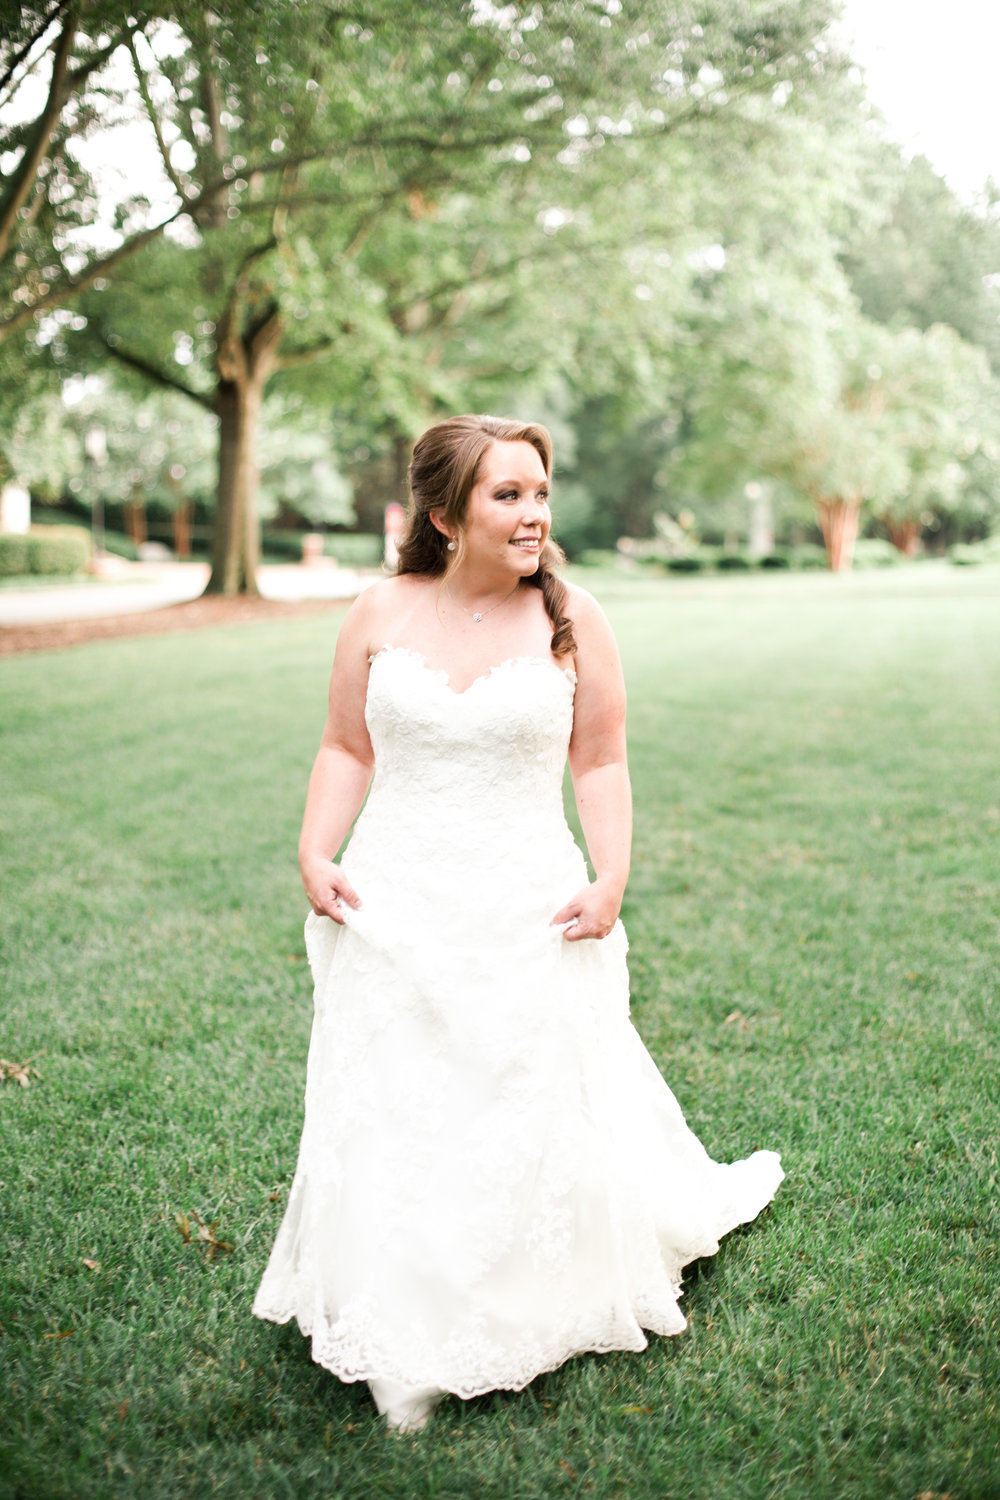 gabbie_bridal_poured_out_photography-37.jpg